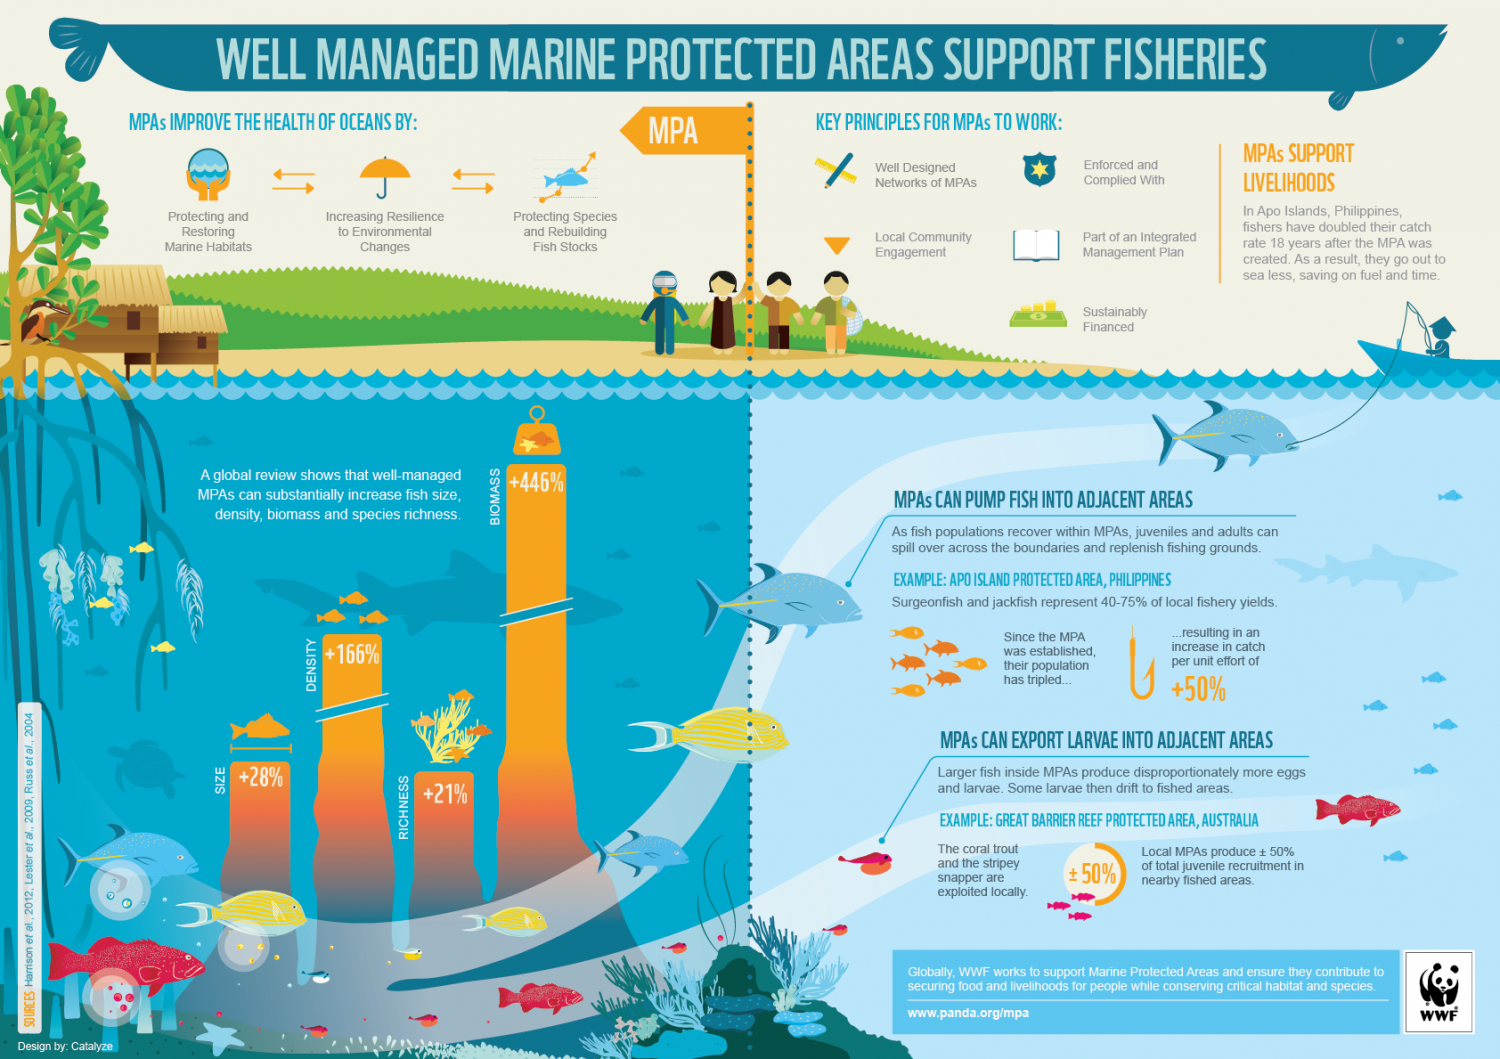 Well Managed Marine Protected Areas Support Fisheries Infographic